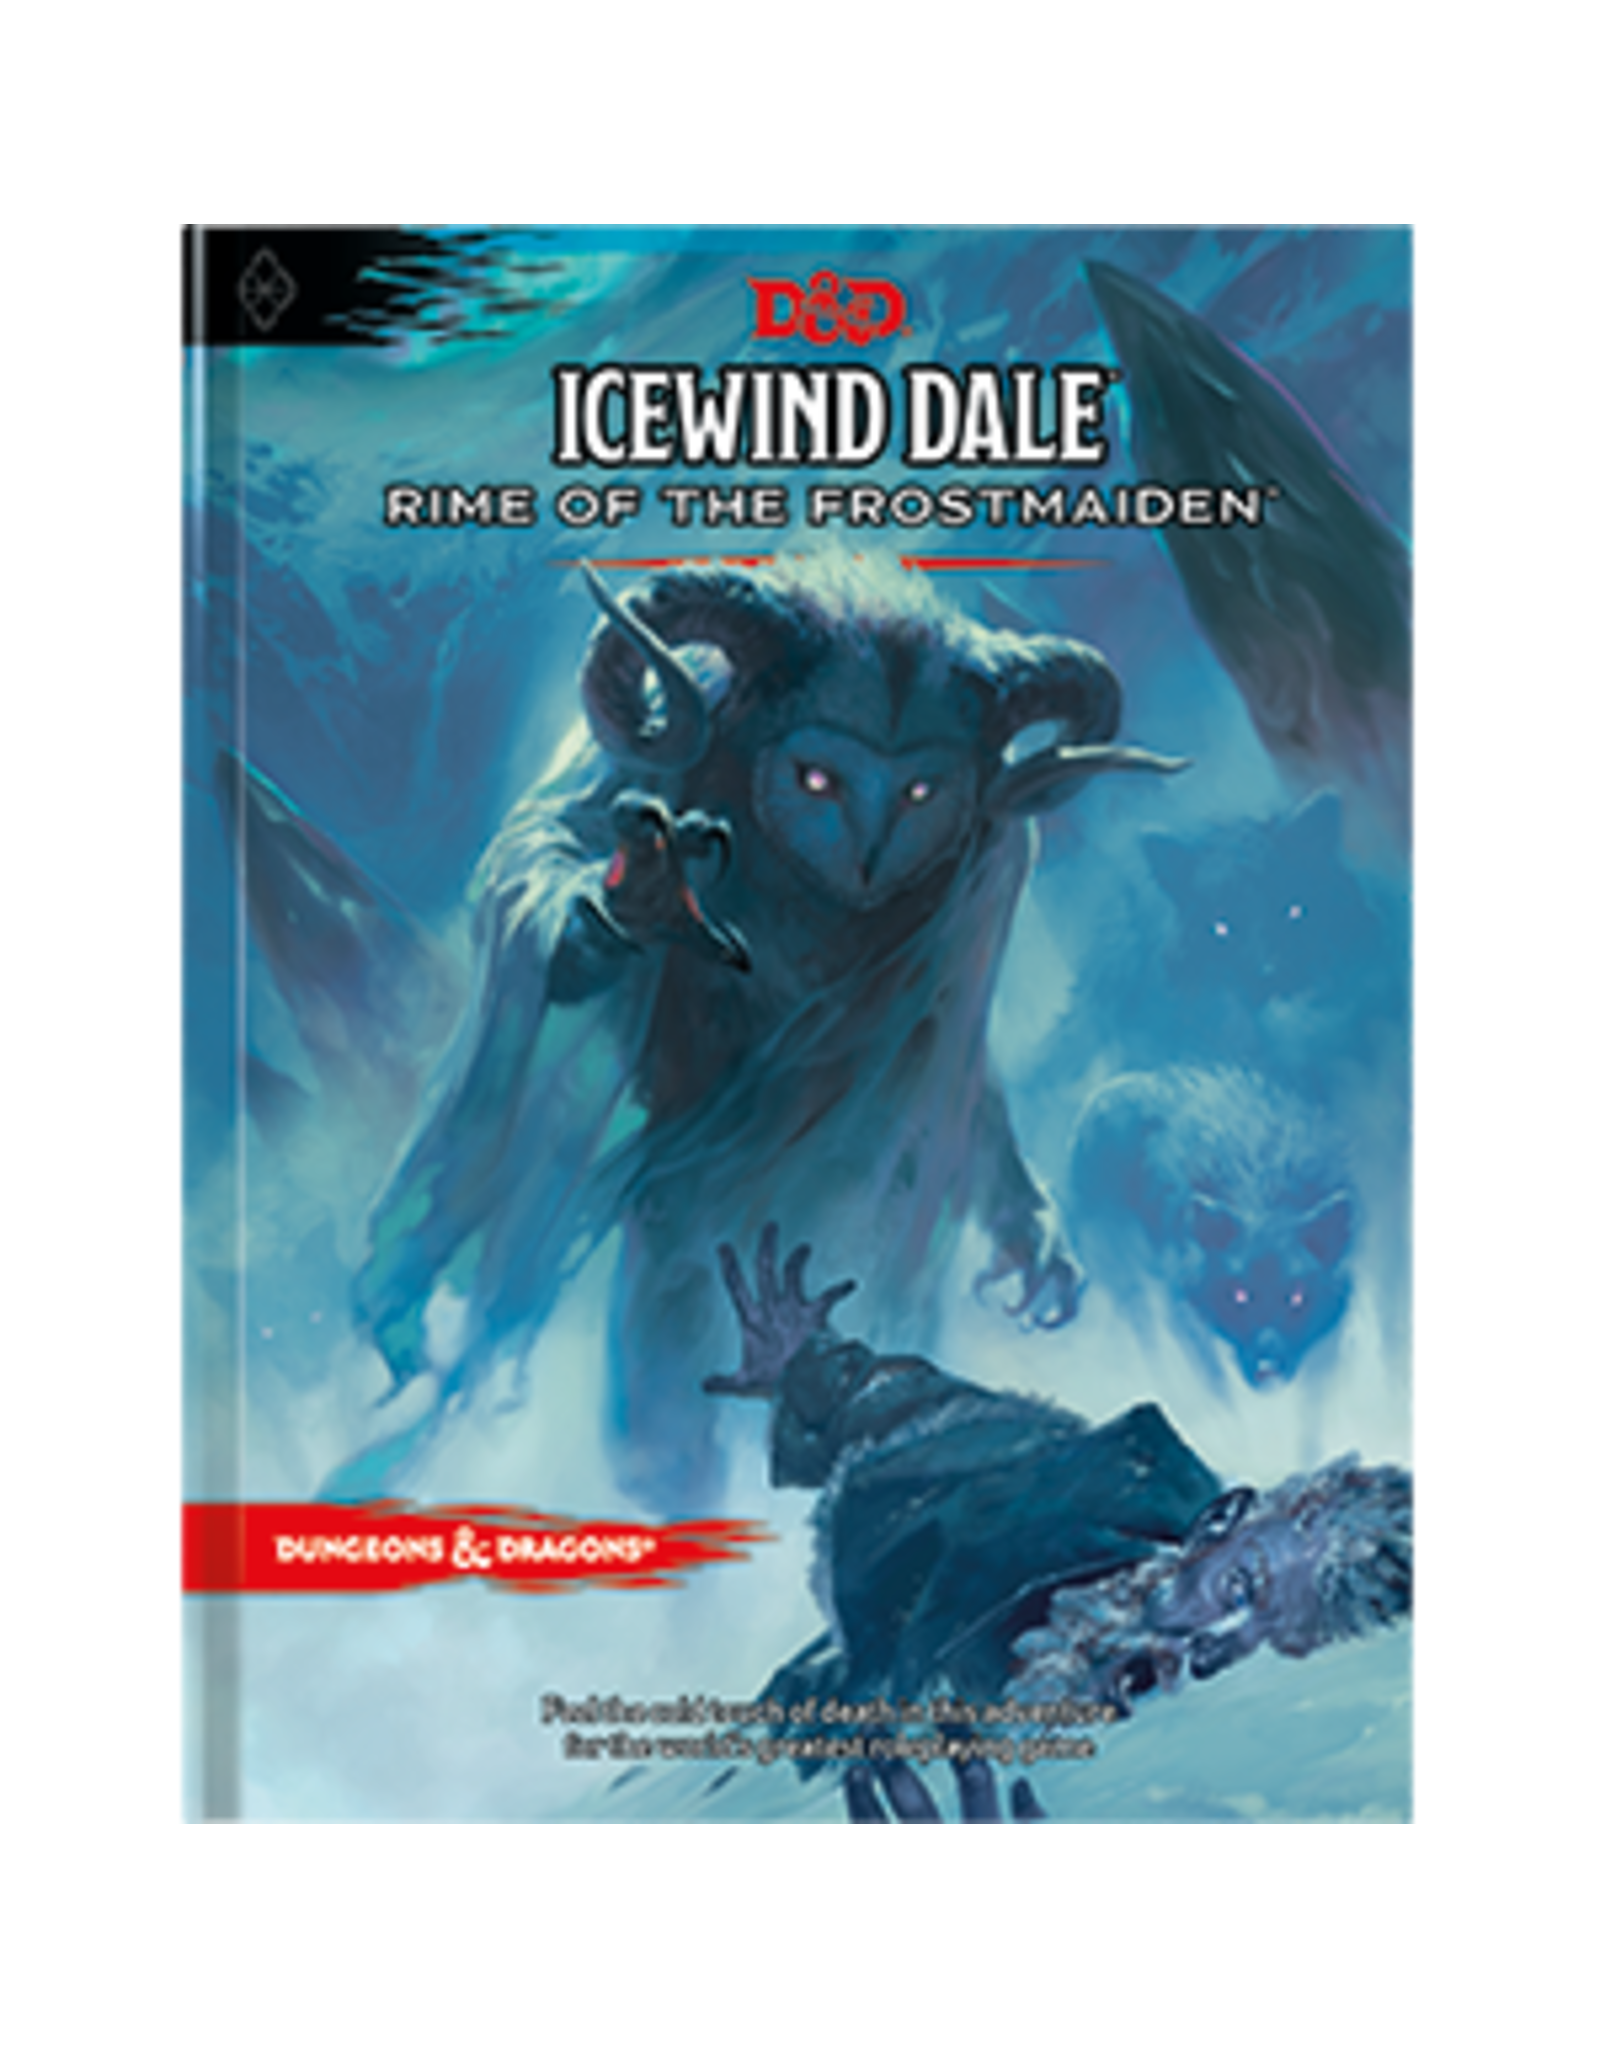 Wizards of the Coast Dungeons and Dragons RPG: Icewind Dale- Rime of the Frostmaiden